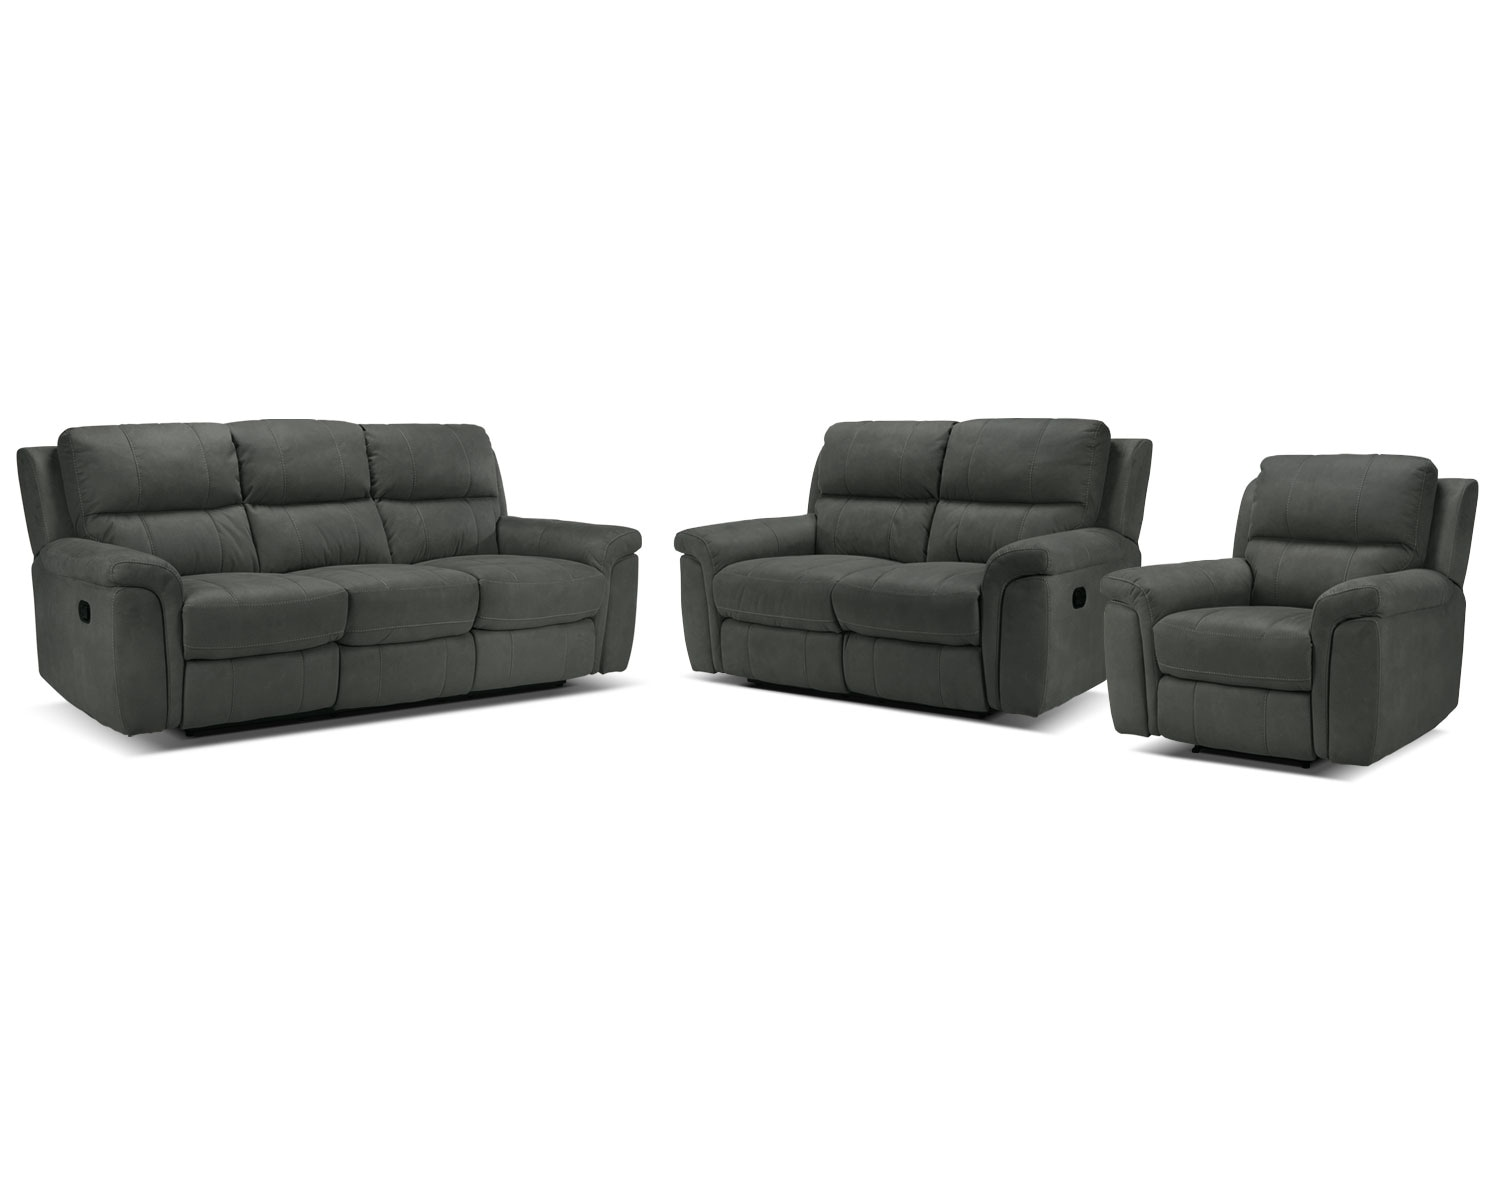 The Roarke Living Room Collection - Charcoal